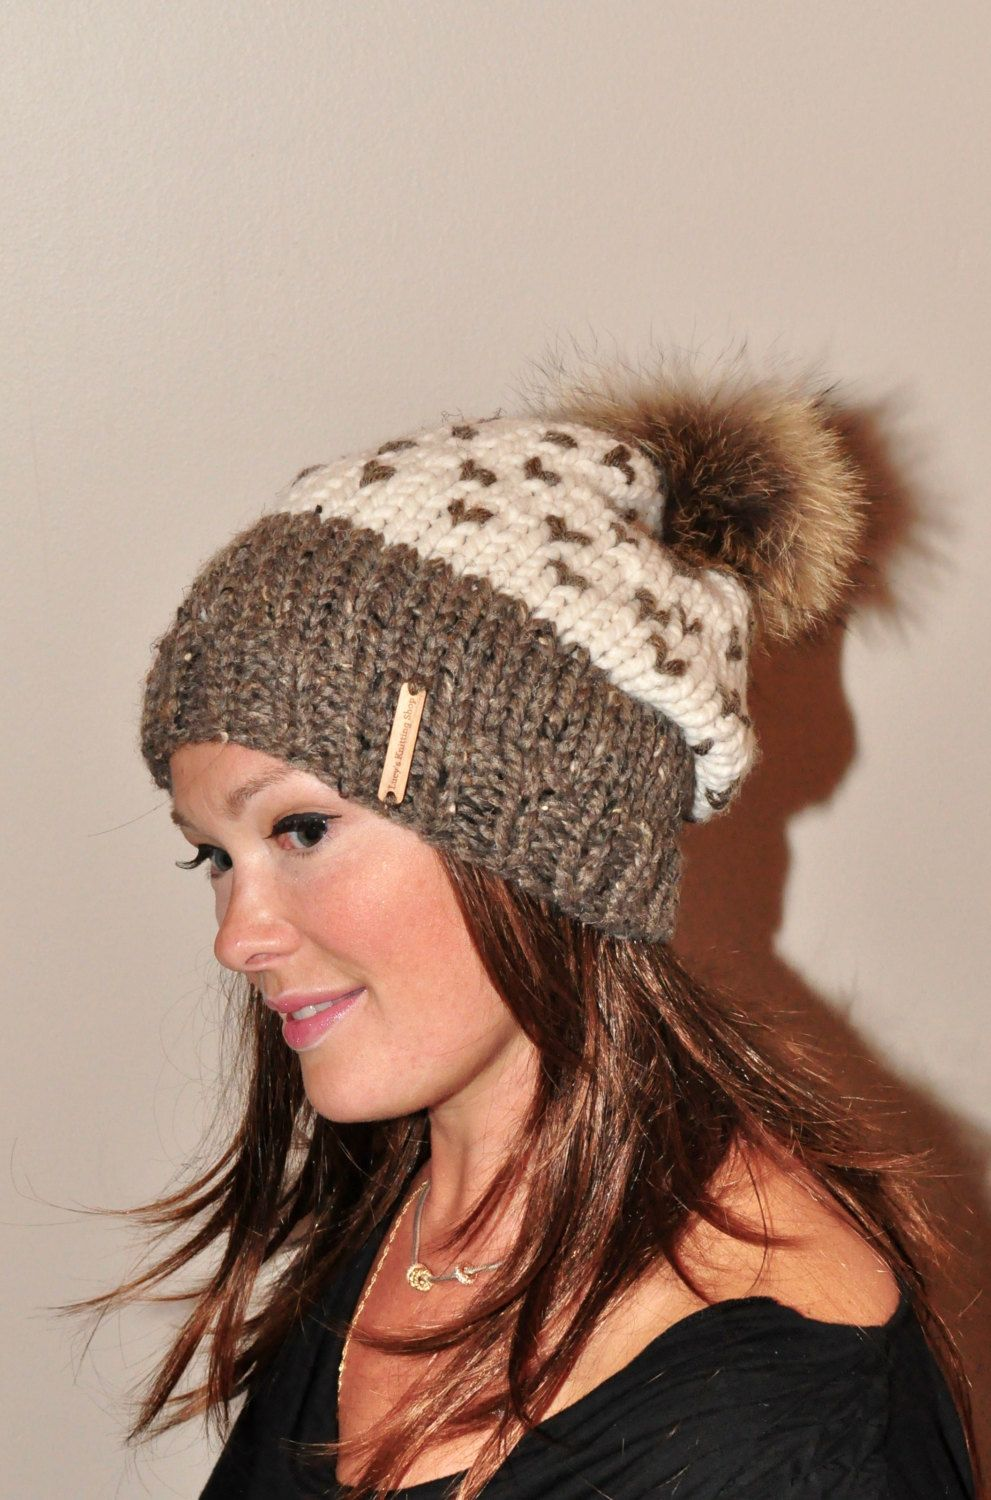 a15bc04b47559 Fair Isle Slouchy Hat Two Tone Pompom Beanie Chunky Women Hat Winter Hat  CHOOSE COLORS Ivory Beige Brown Chunky Knit Hat Christmas Gift by lucymir  on Etsy